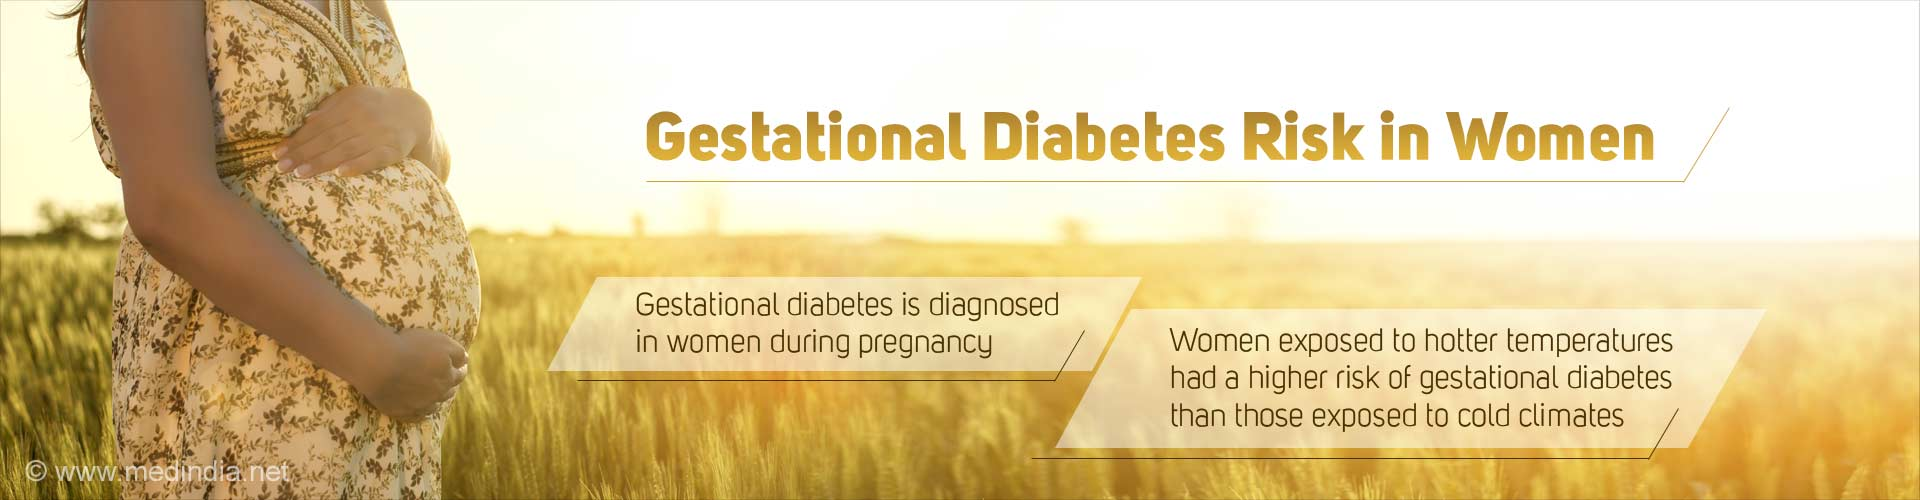 Gestational diabetes risk in women